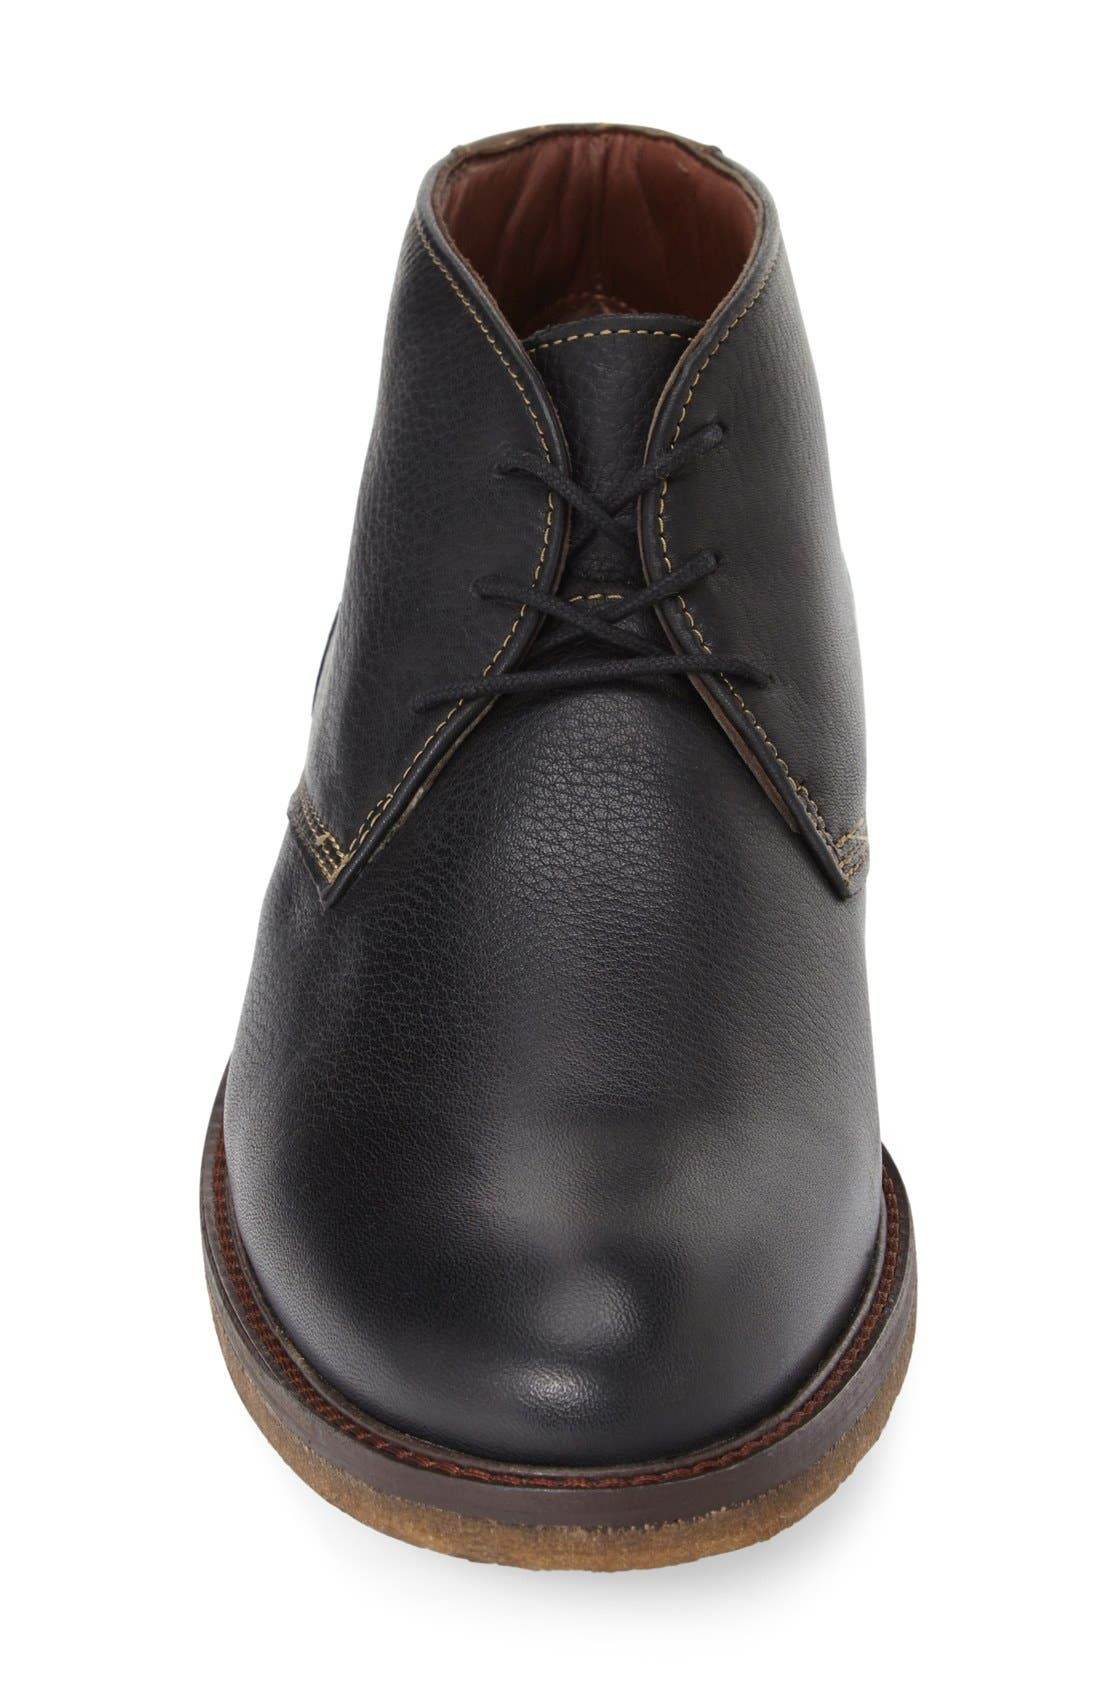 JOHNSTON & MURPHY, 'Copeland' Suede Chukka Boot, Alternate thumbnail 3, color, BLACK LEATHER